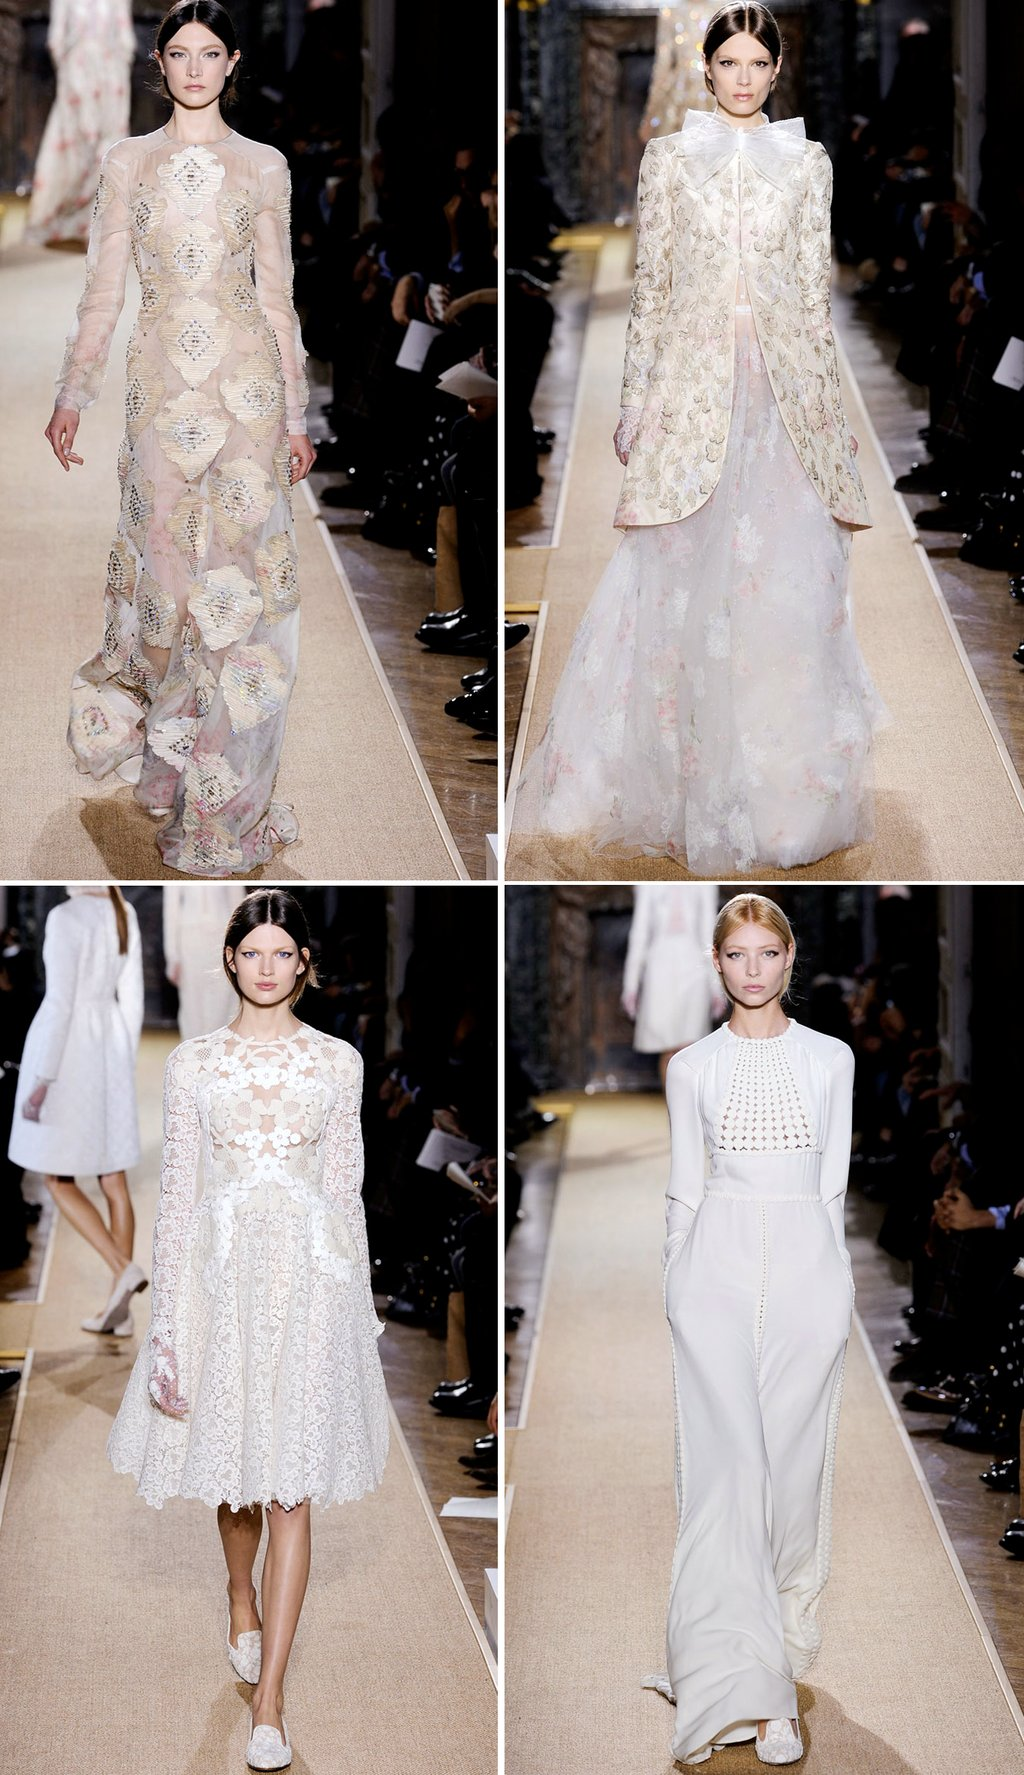 Elegant-valentino-spring-2012-couture-wedding-dress-inspiration-trends-bridal.full